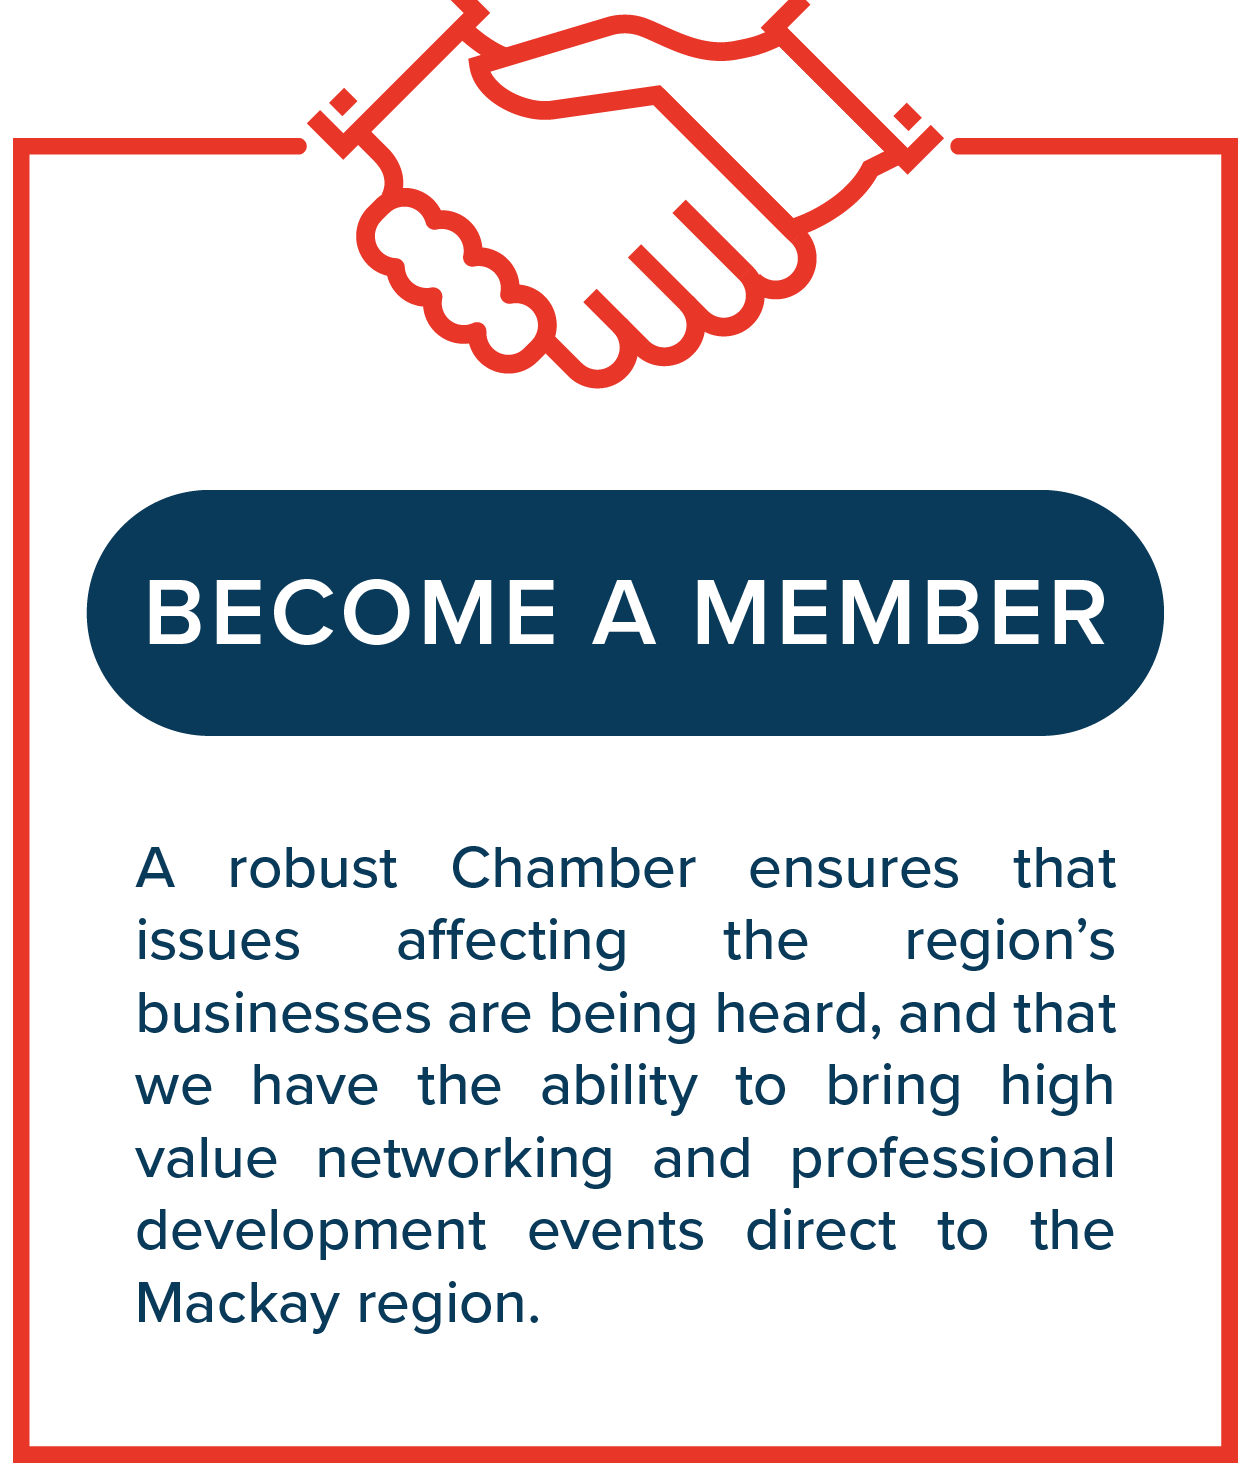 Become a member - A robust Chamber ensures that issues affecting the region's businesses are being heard, and that we have the ability to bring high value networking and professional development events direct to the Mackay region.